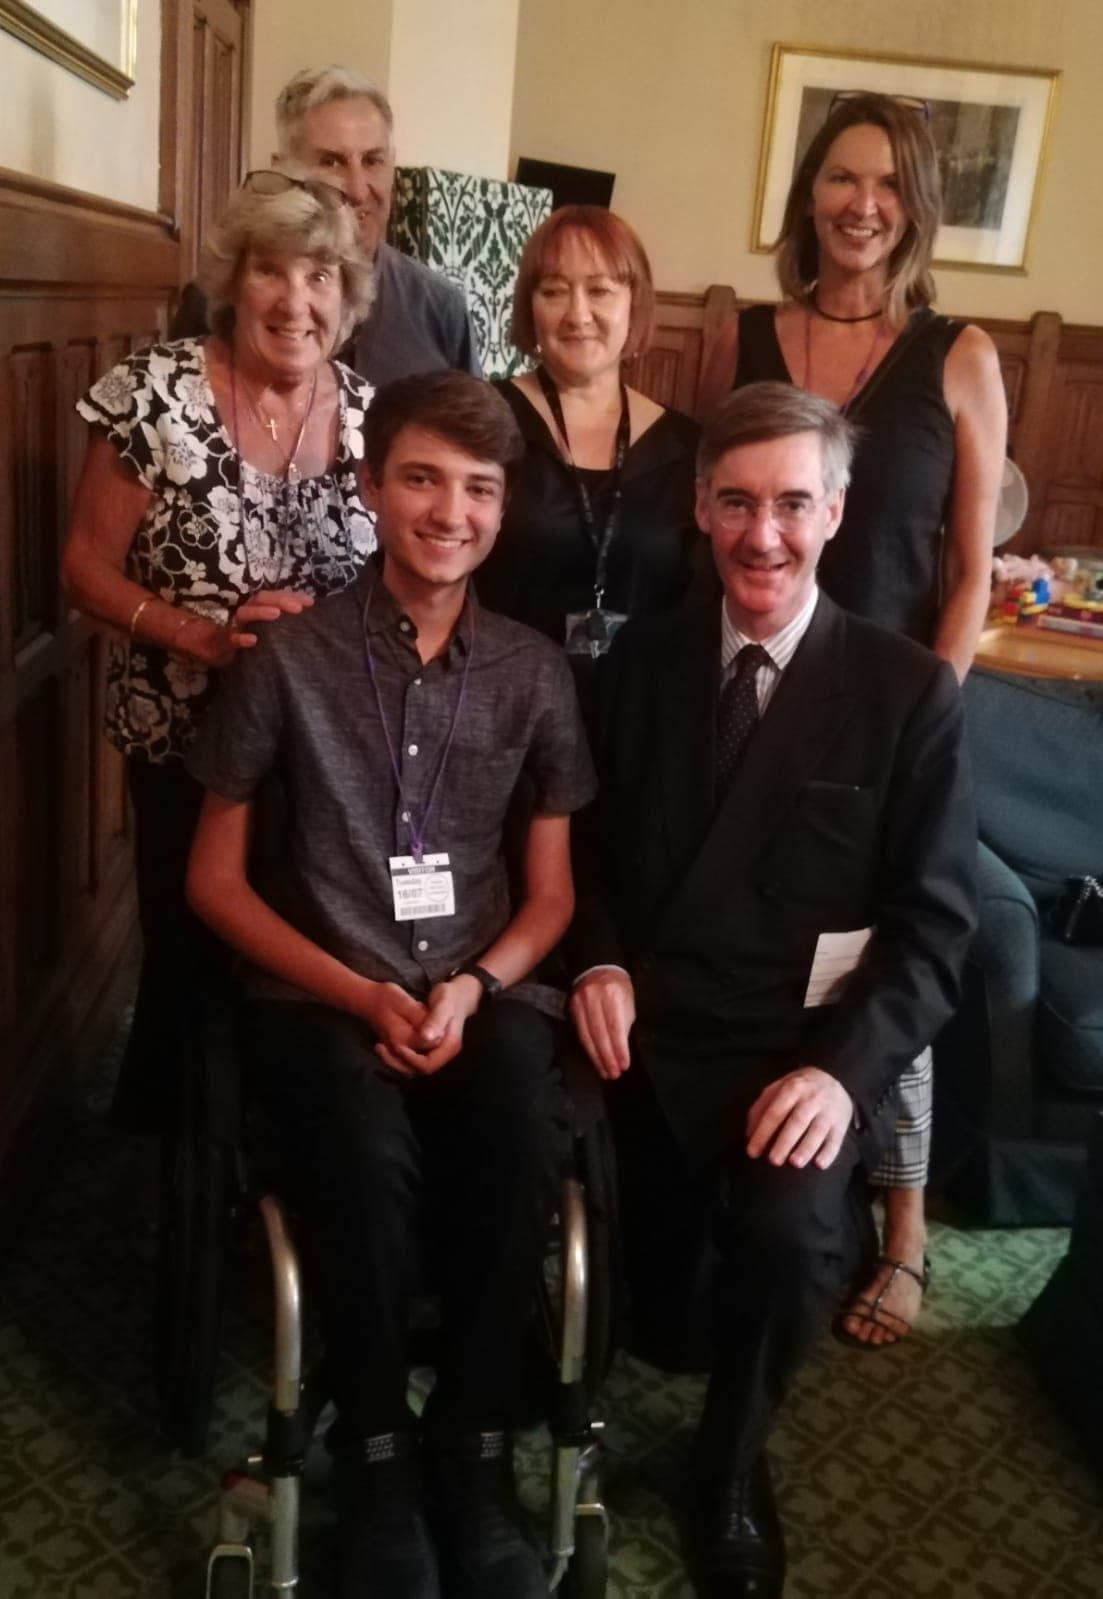 Jake And TreatSMA Take Campaign To The Houses Of Parliament